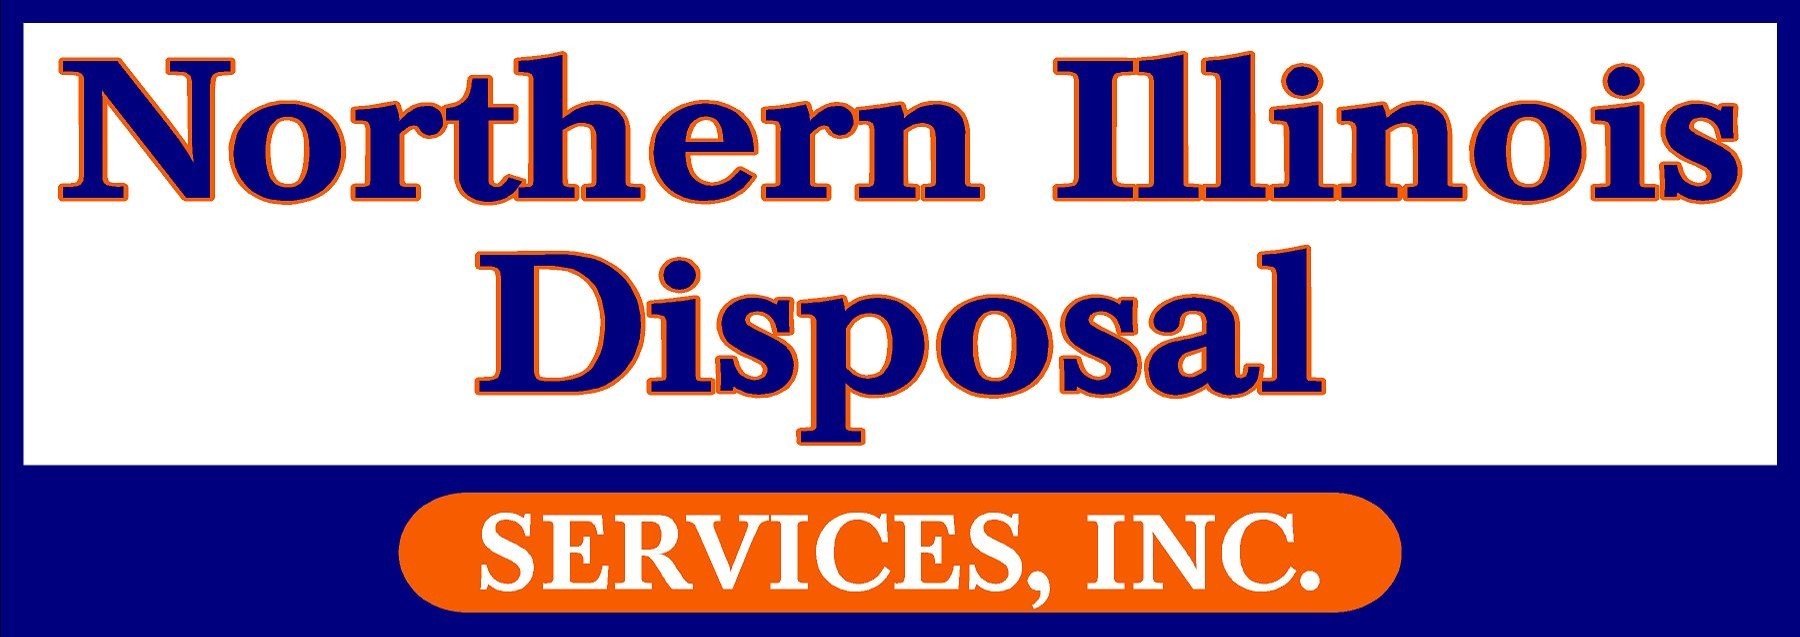 Northern Illinois Disposal